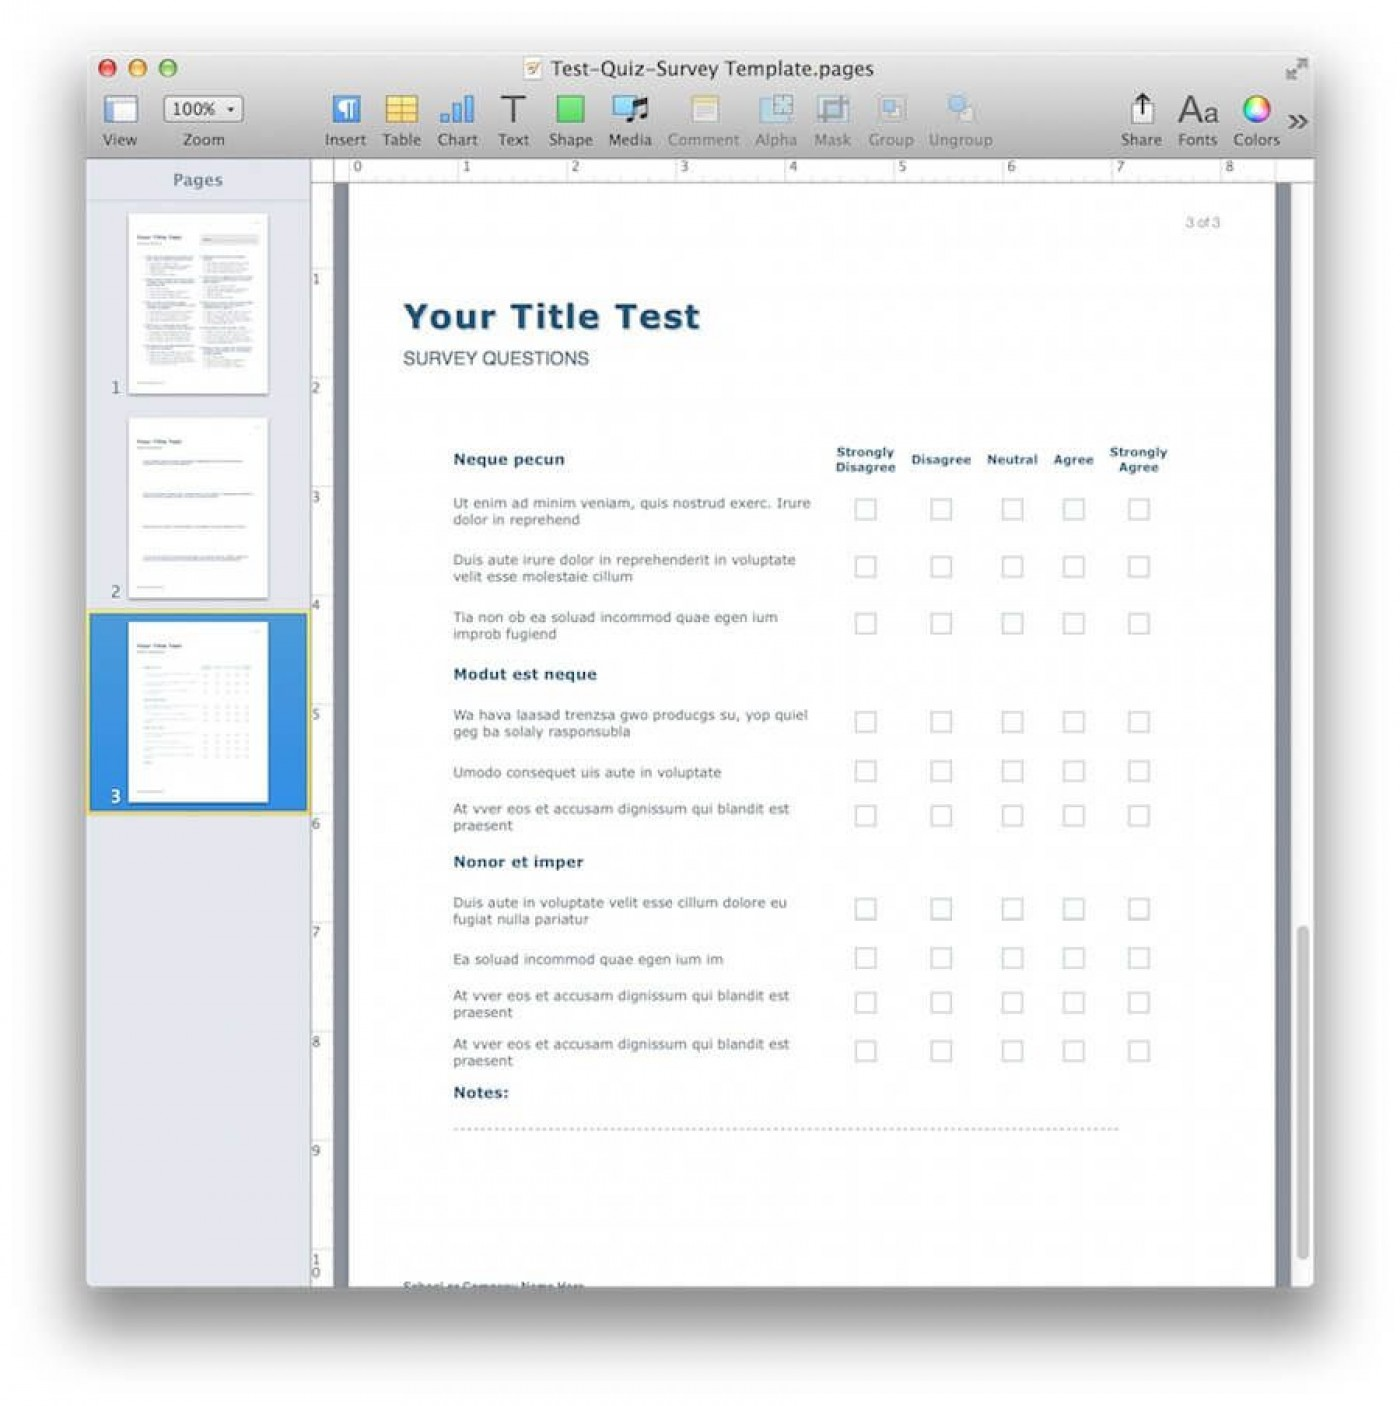 009 Phenomenal Addres Label Template For Mac Page Sample  Return Avery 51601400